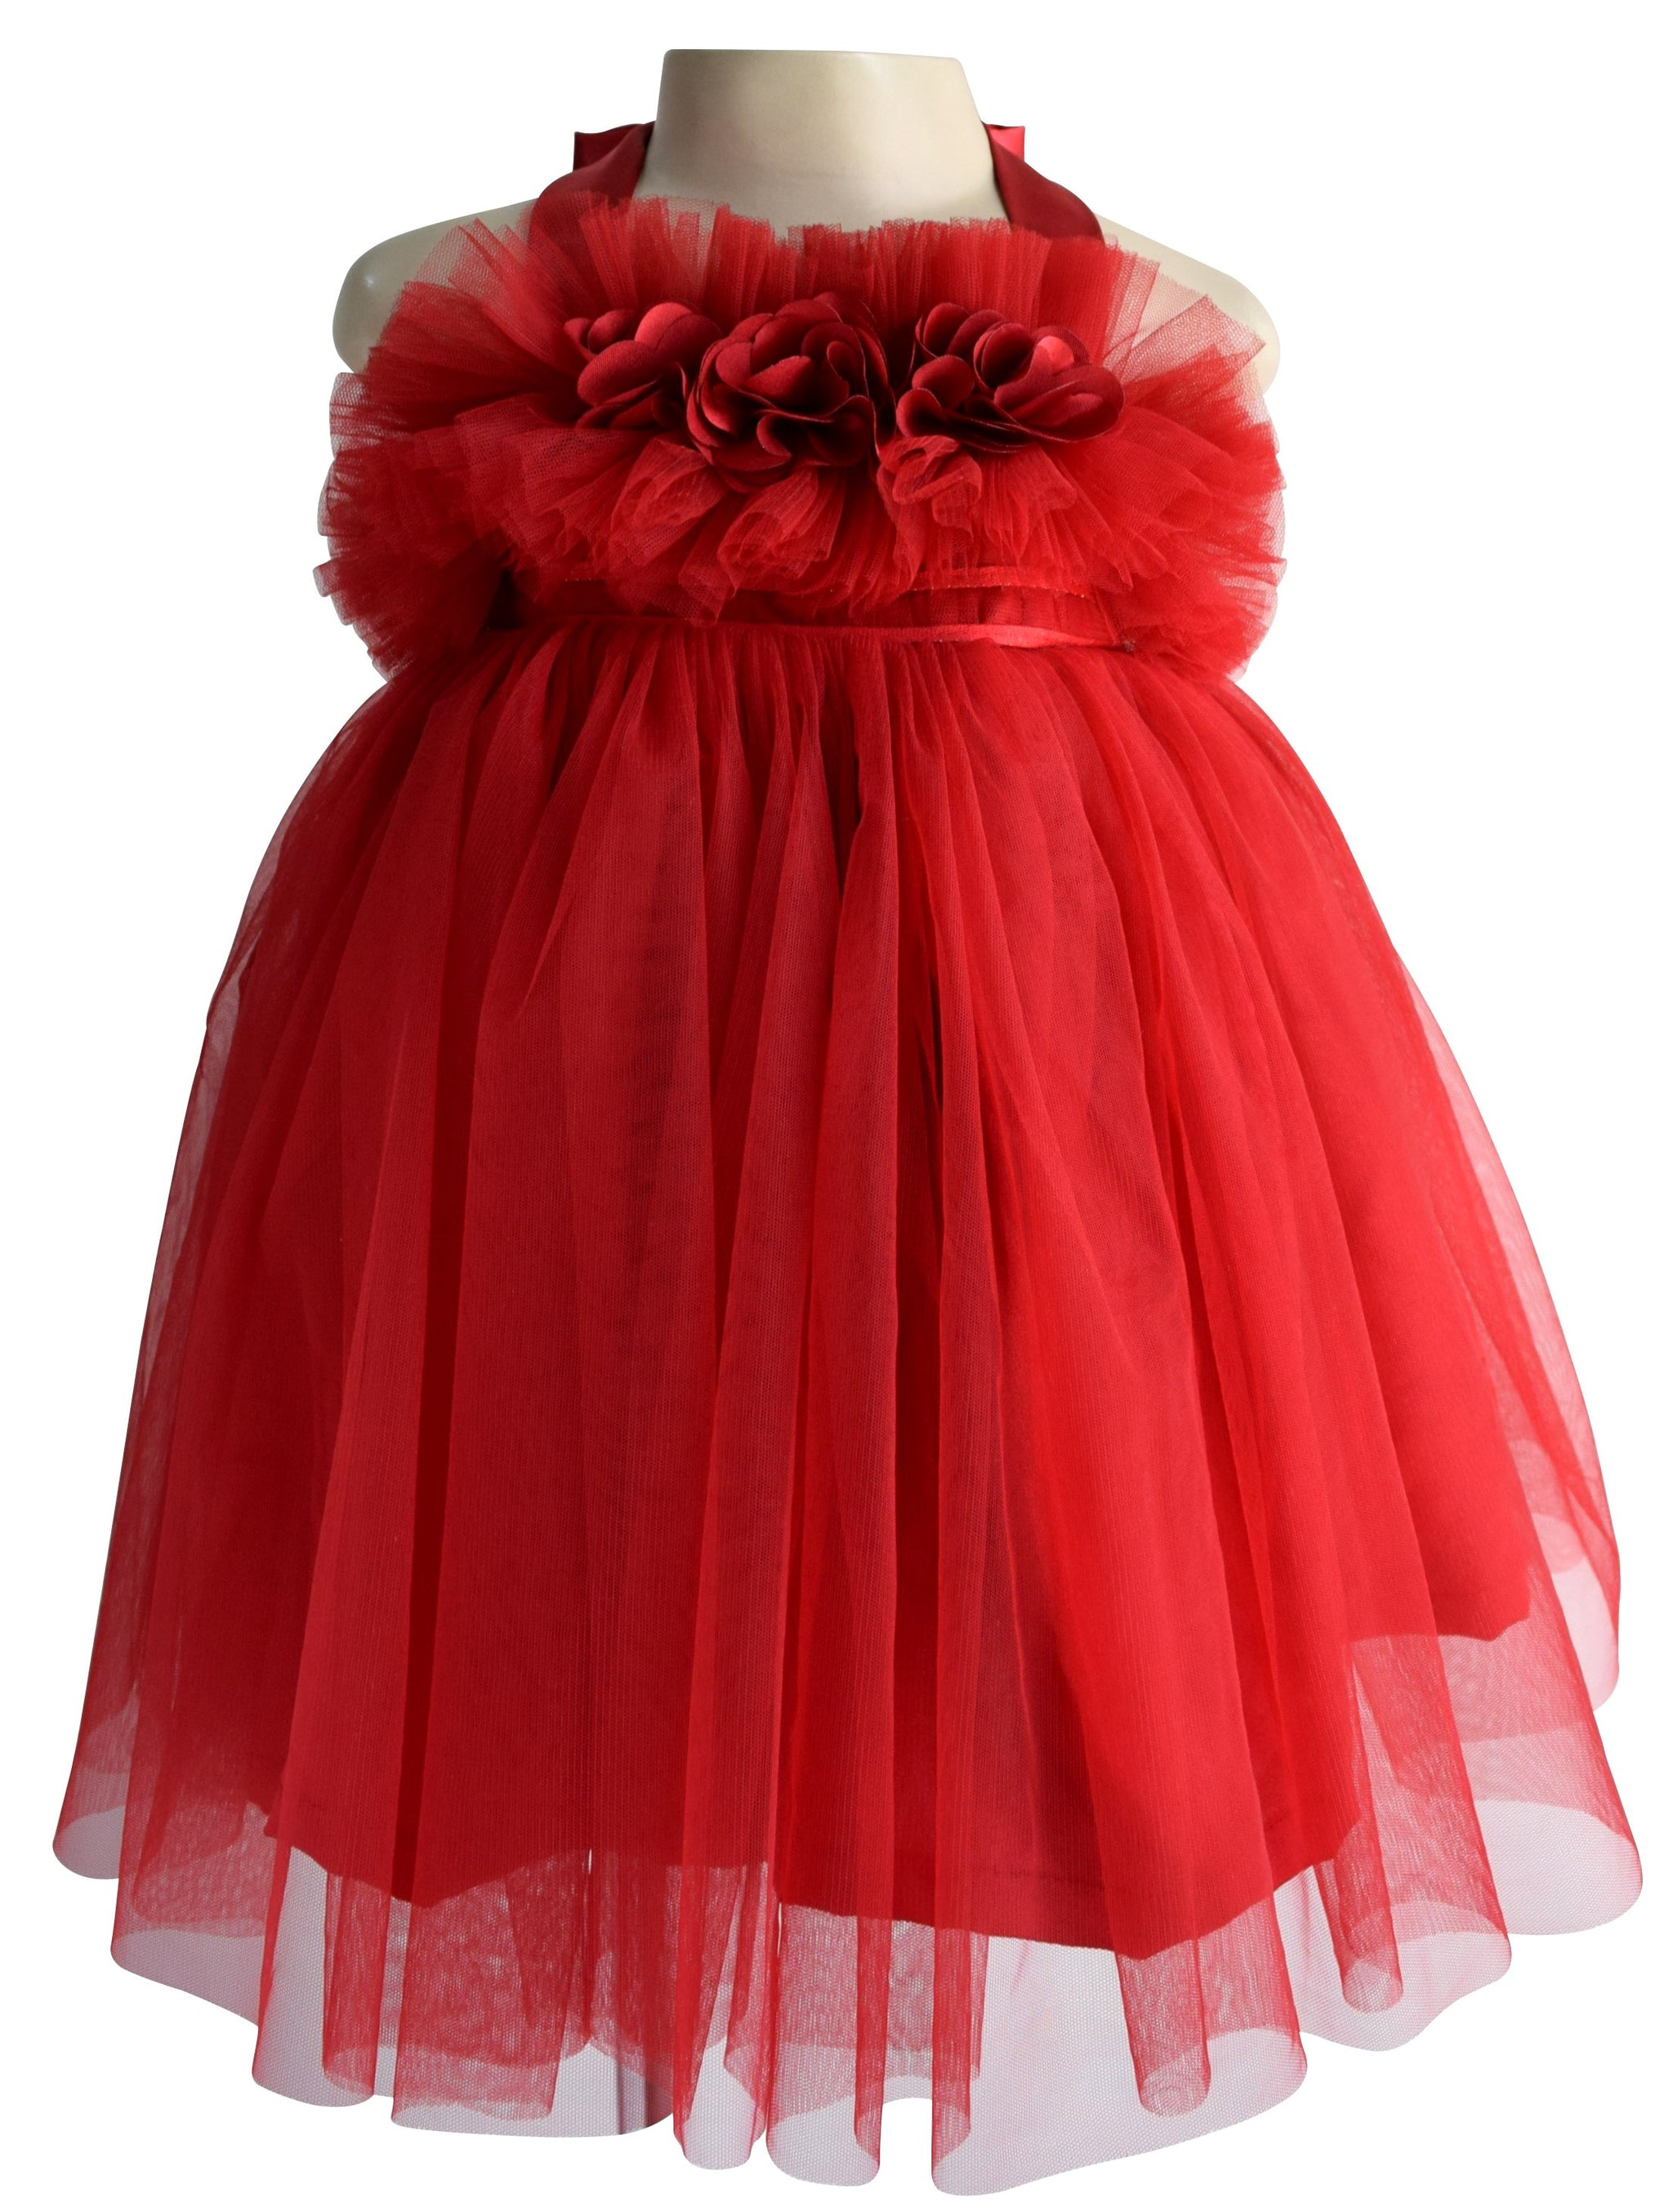 20fba5d395e02 Buy Girls party wear dresses online|birthday dresses|dresses for girls